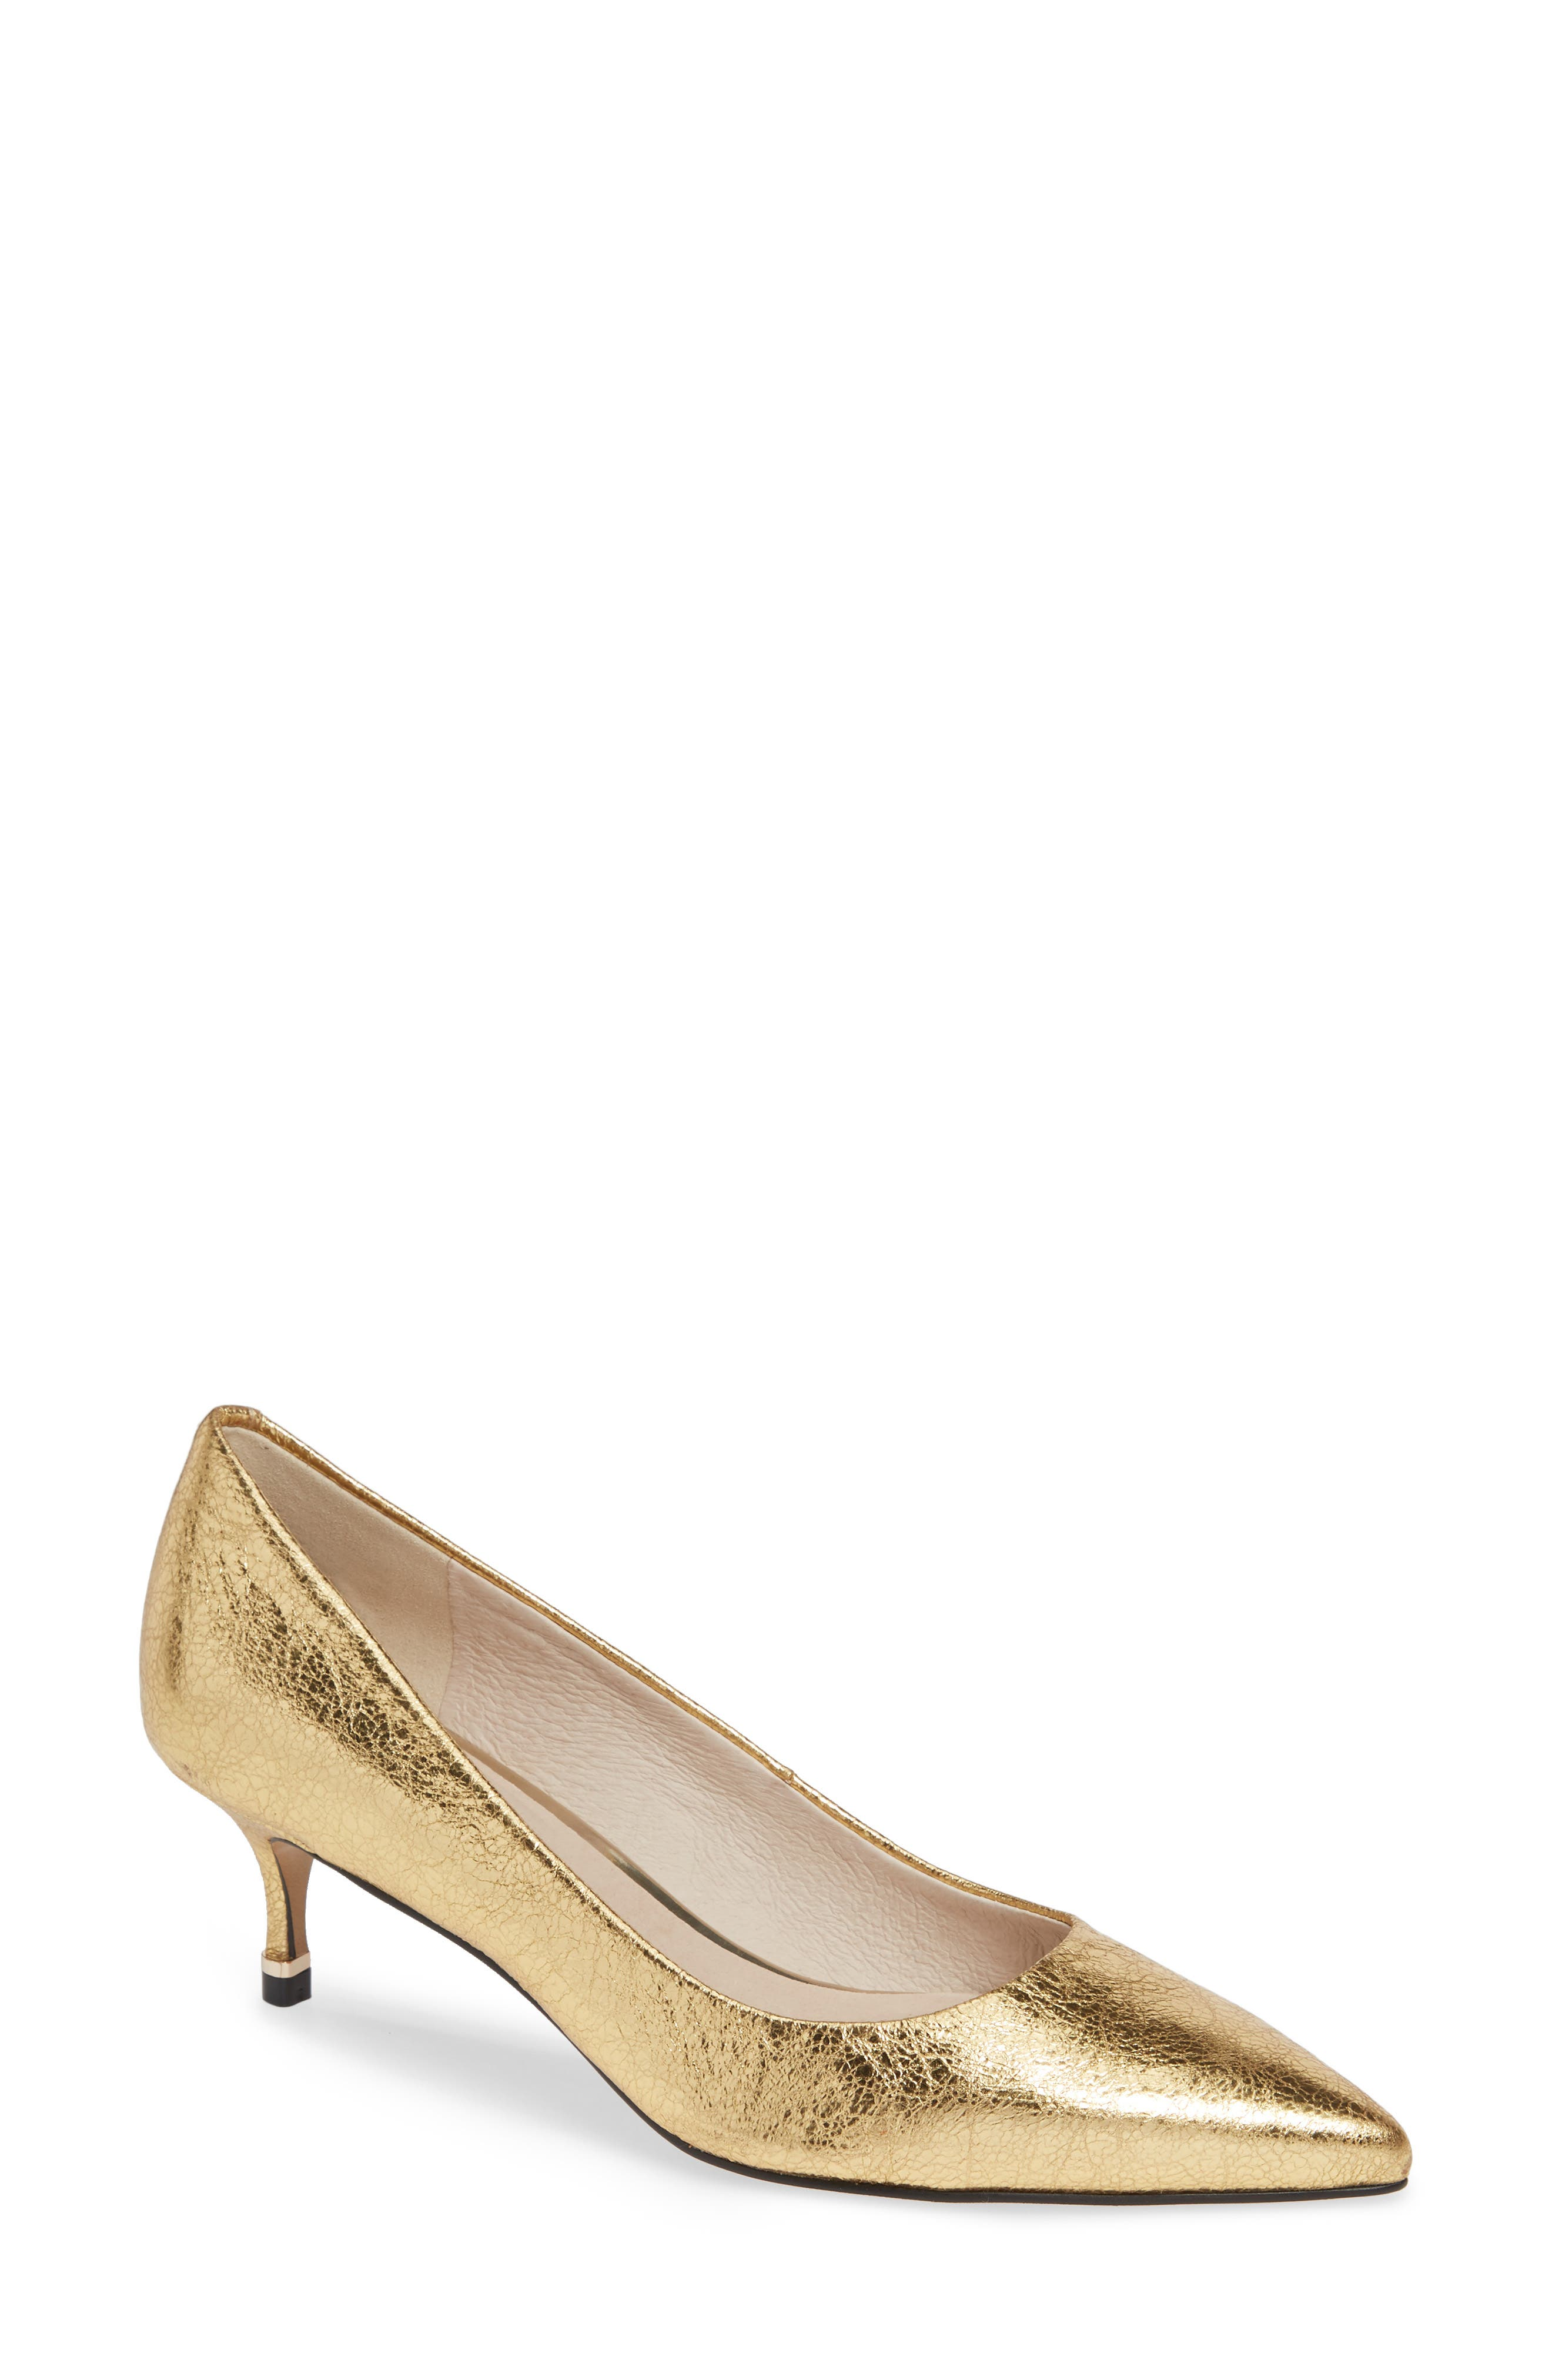 Riley 50 Pump,                             Main thumbnail 1, color,                             YELLOW GOLD LEATHER